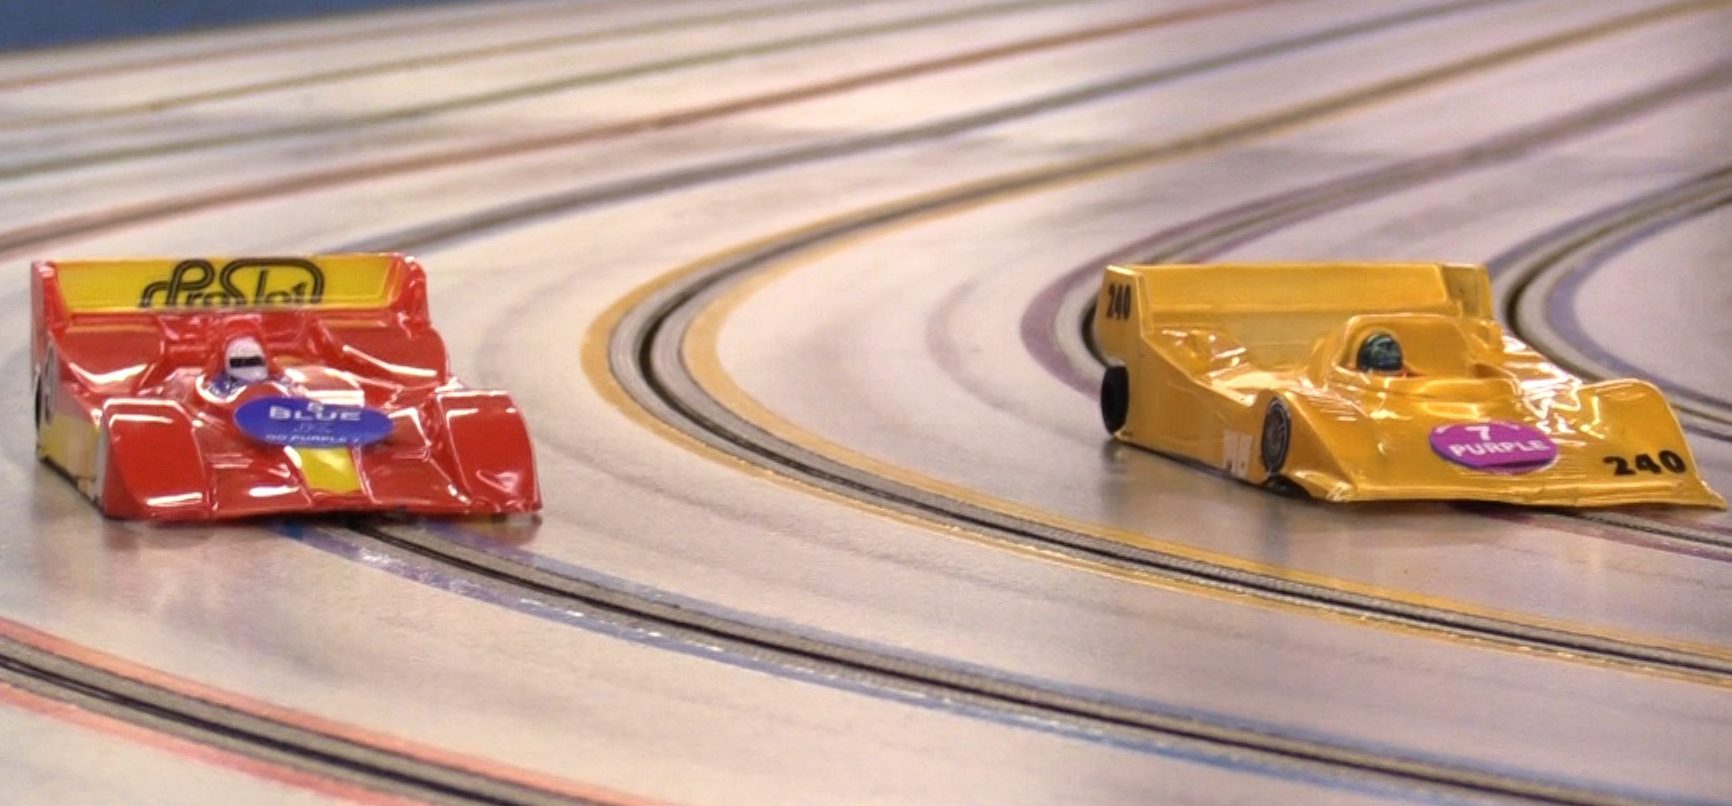 Race Hub helps with refining reflexes and fine motor skills